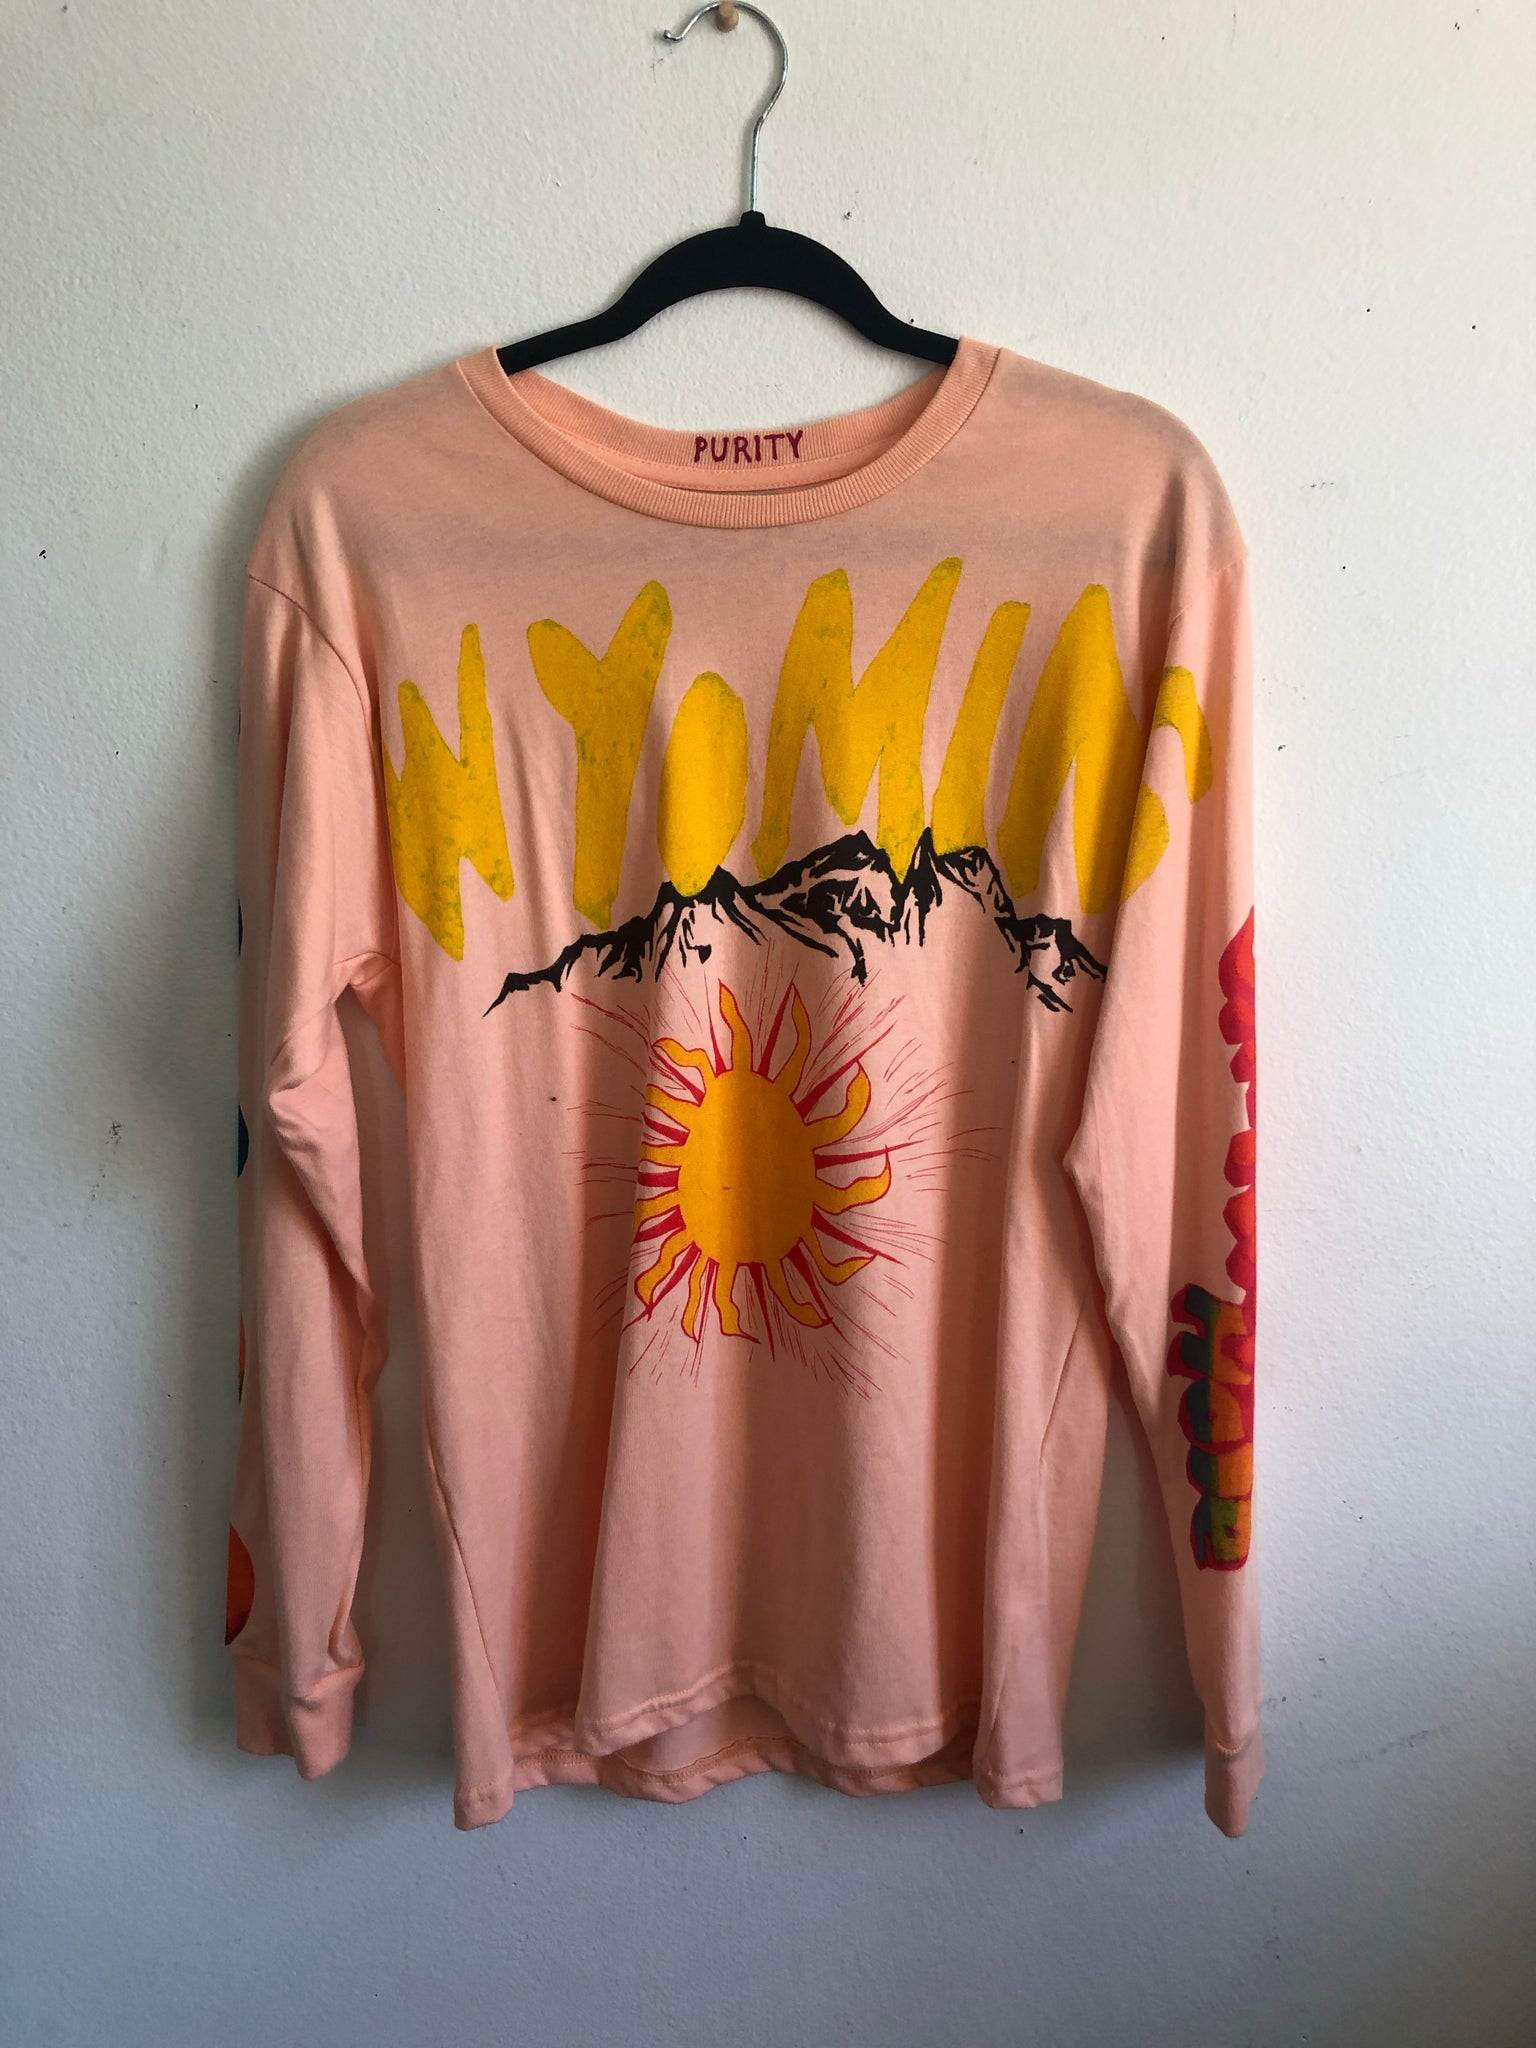 Authentic kanye West Wyoming merch Medium – FEAR+CLOATHING